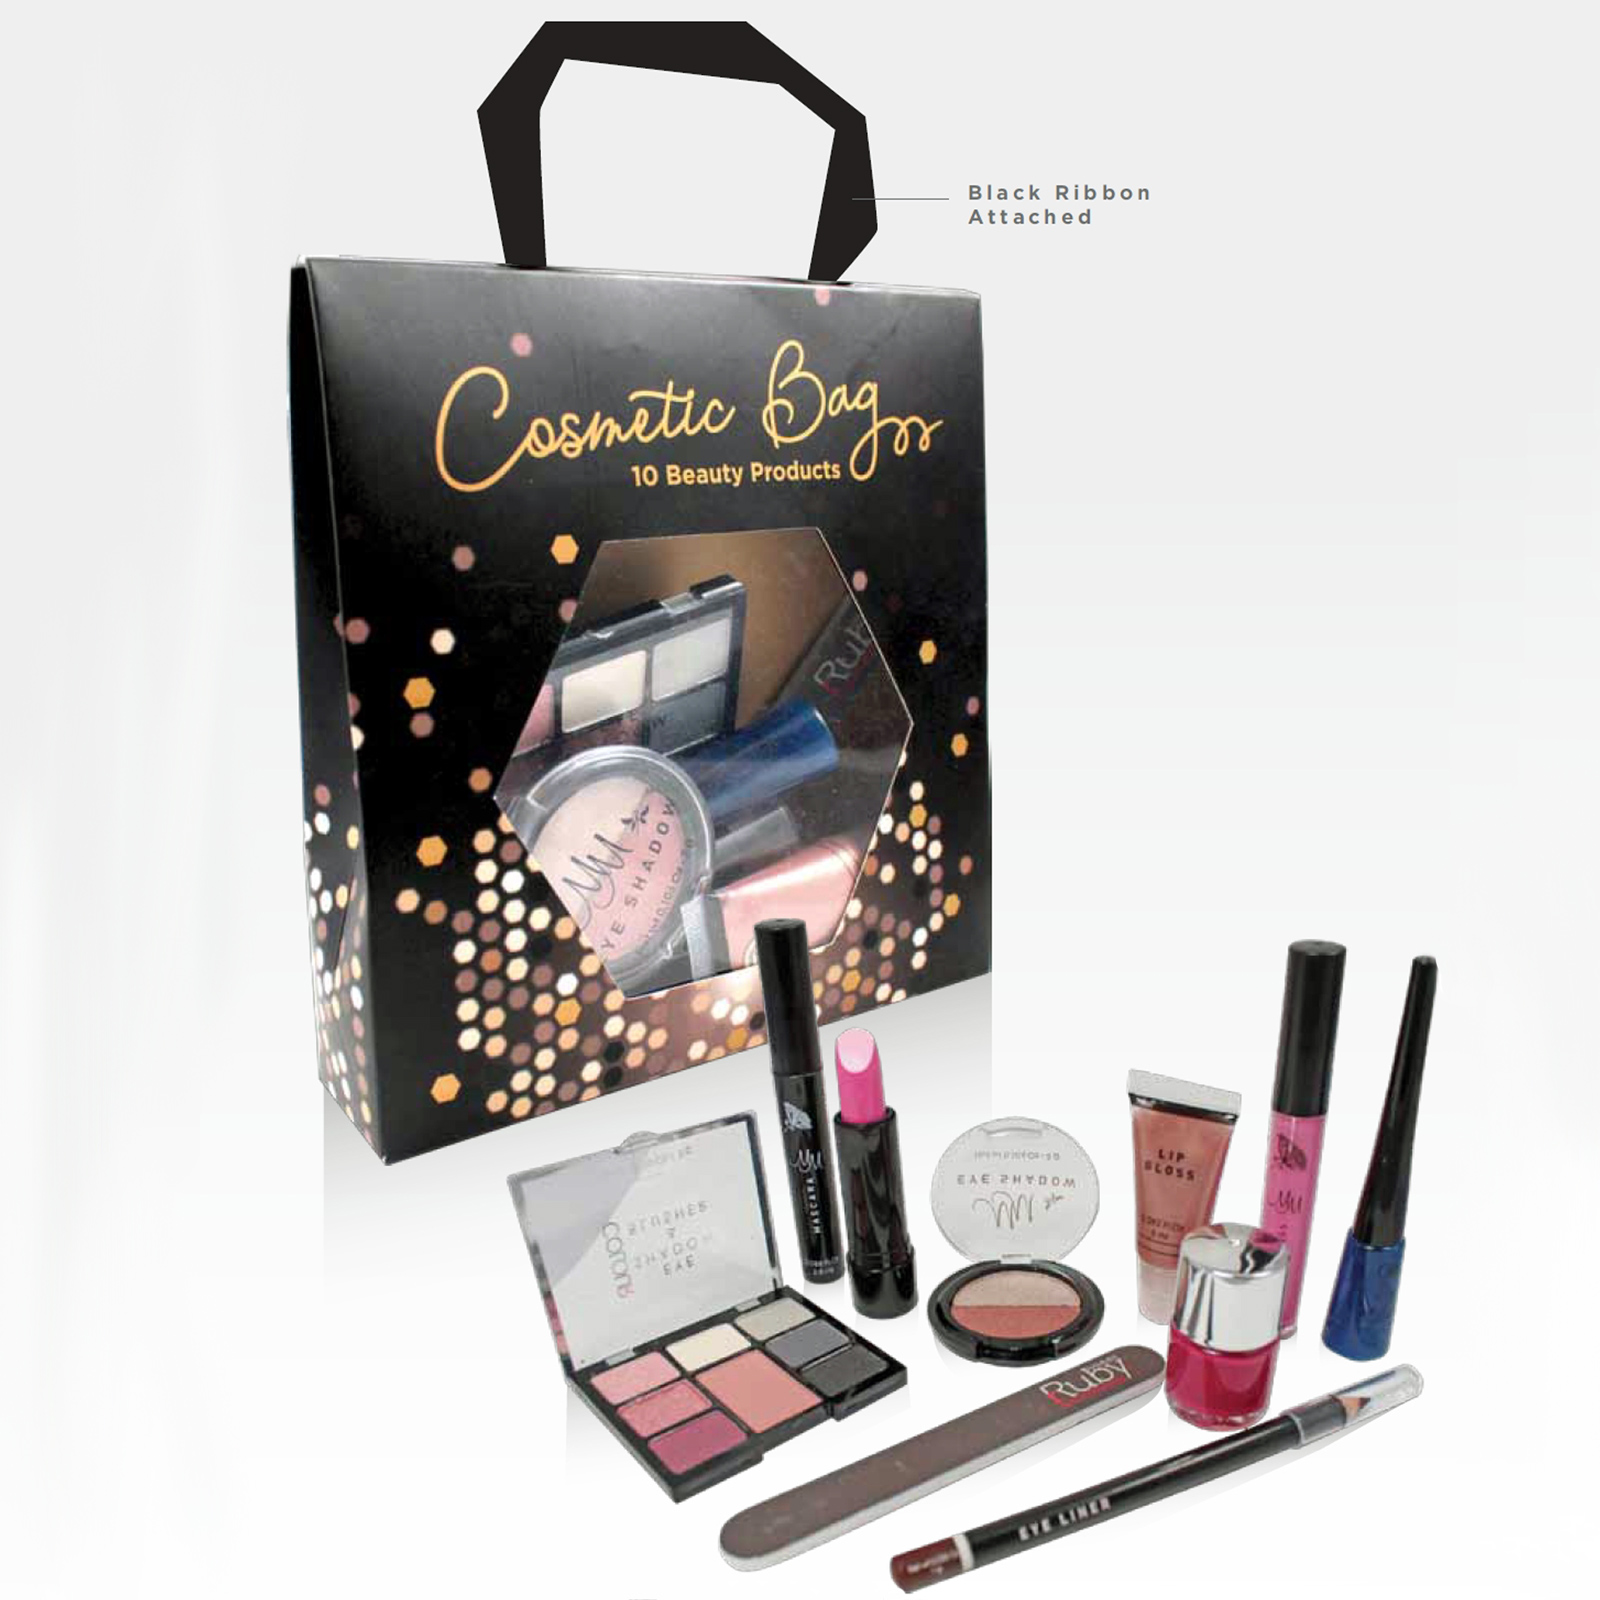 Makeup Ideas » Makeup Gift Set - Beautiful Makeup Ideas and Tutorials